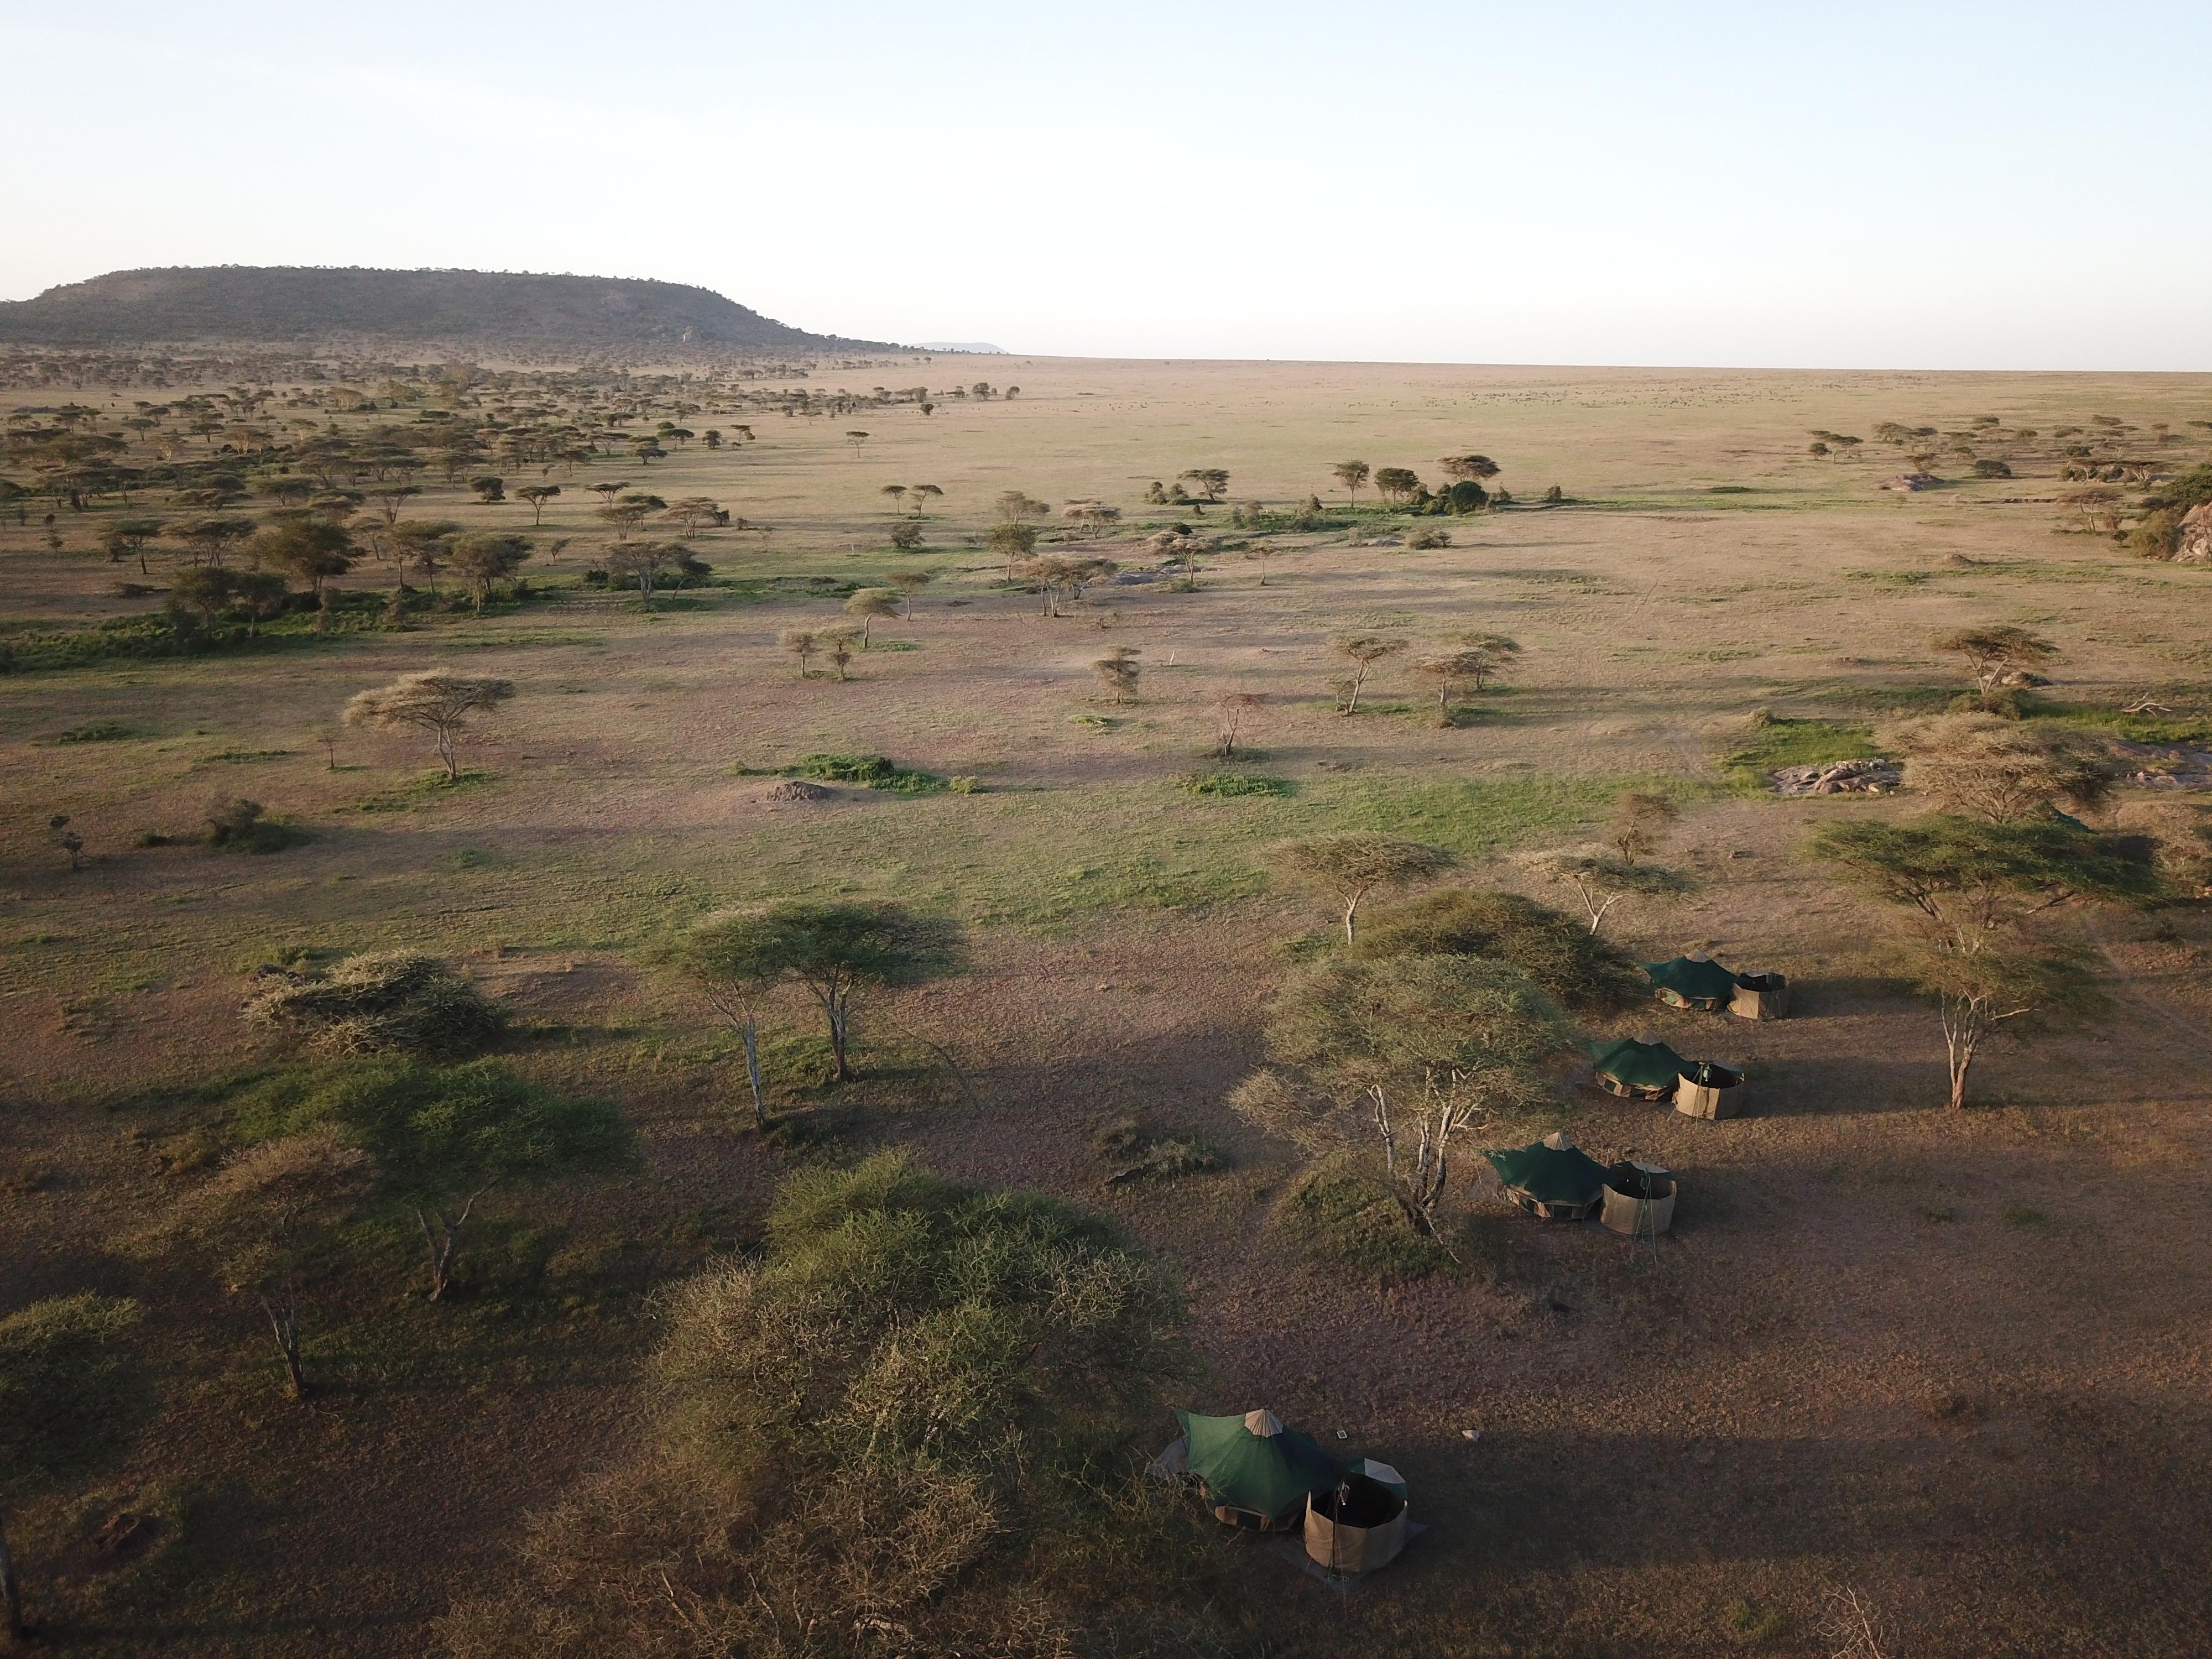 WAYO-walking-safari-camp-from-above.JPG#asset:116598